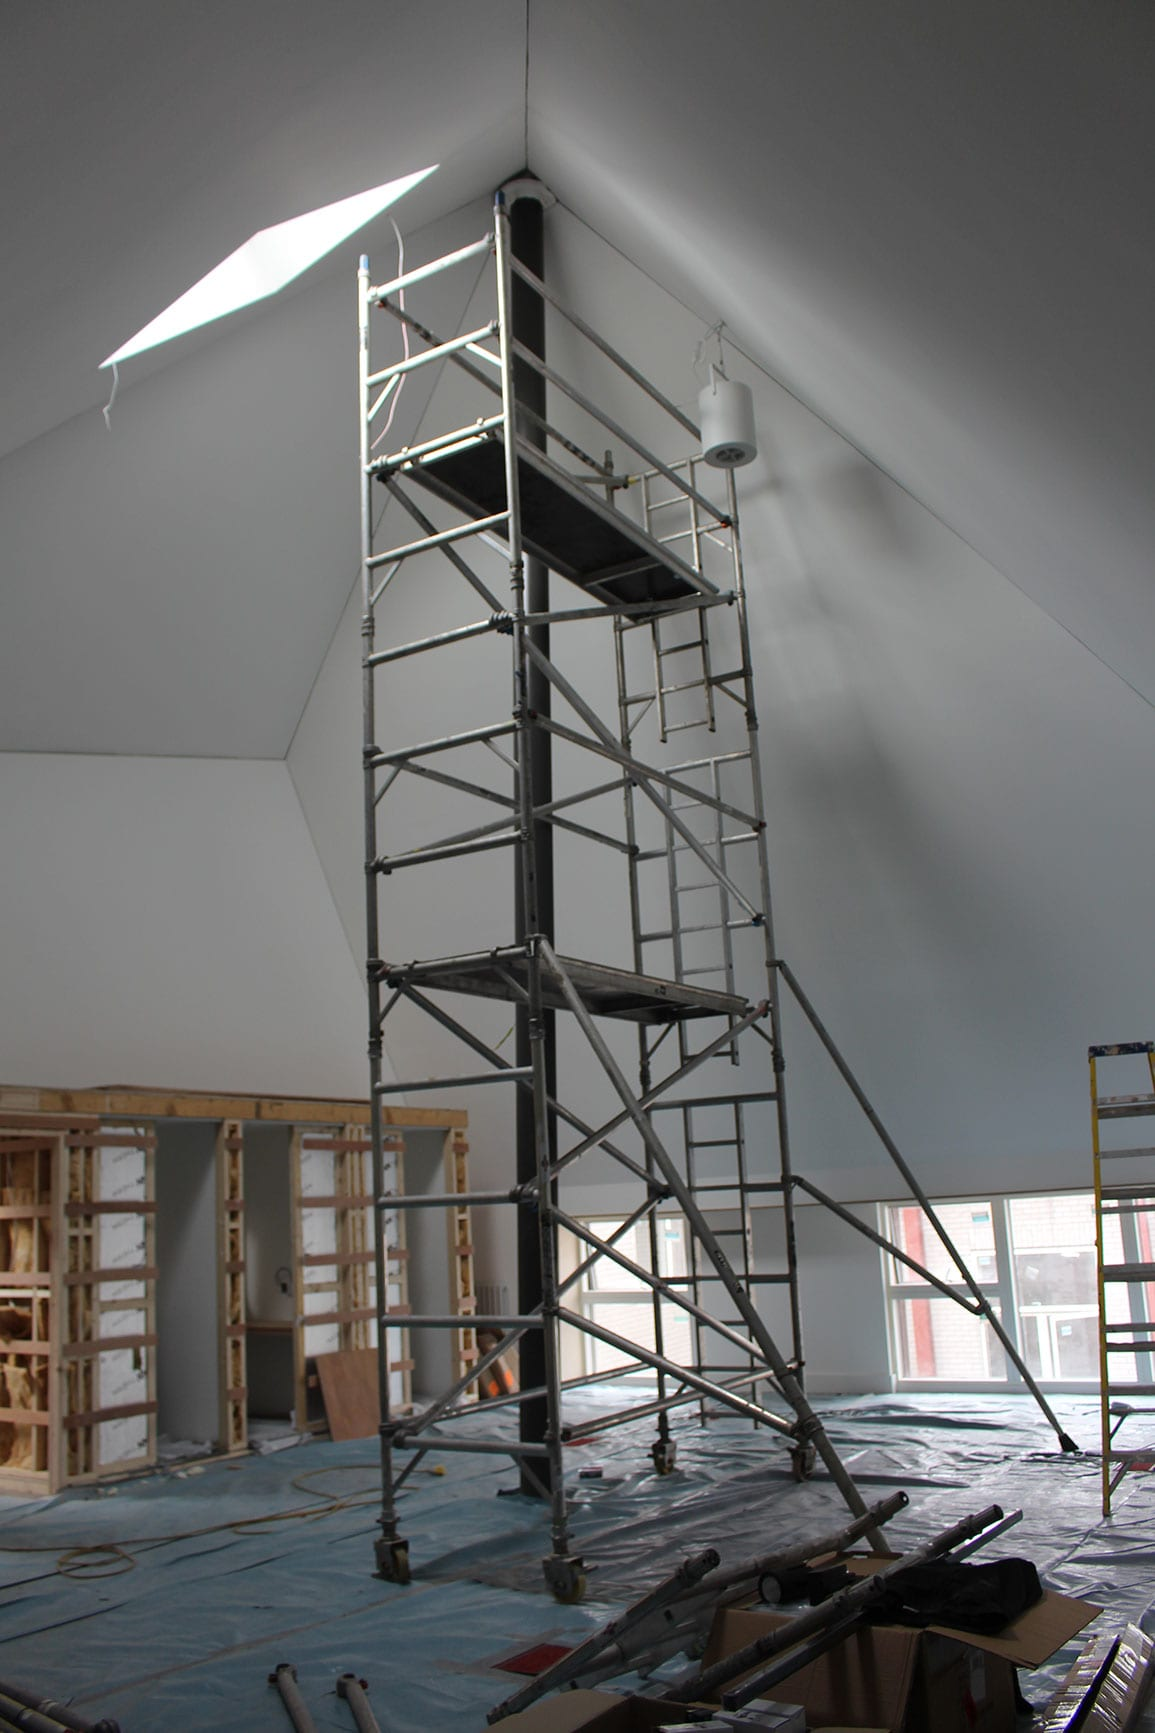 Architectural Emporium Walk the plank in progress site photo hub office pyramid roof